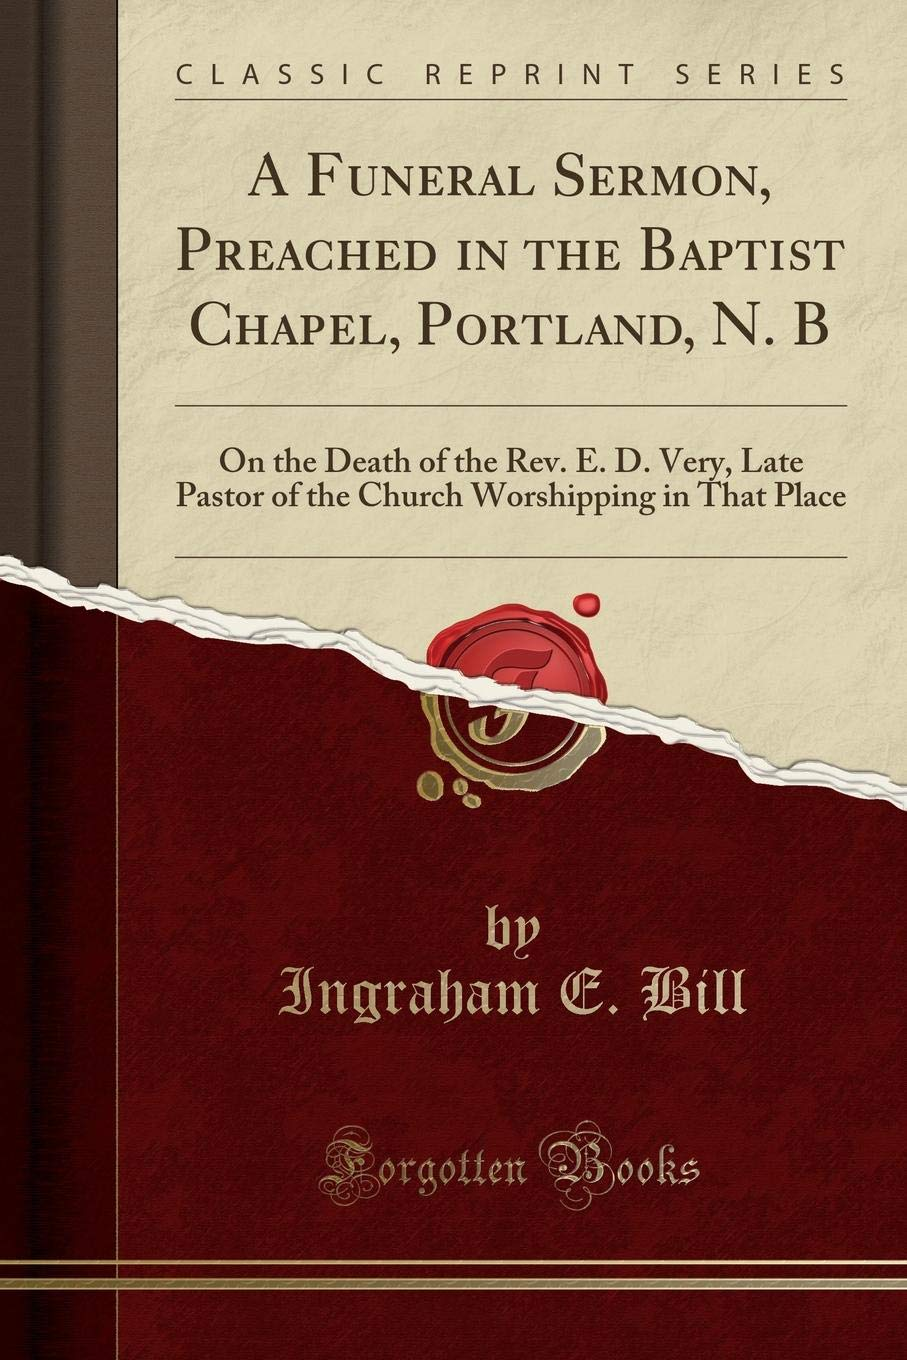 A Funeral Sermon, Preached in the Baptist Chapel, Portland, N. B: On the Death of the Rev. E. D. Very, Late Pastor of the Church Worshipping in That Place (Classic Reprint) PDF